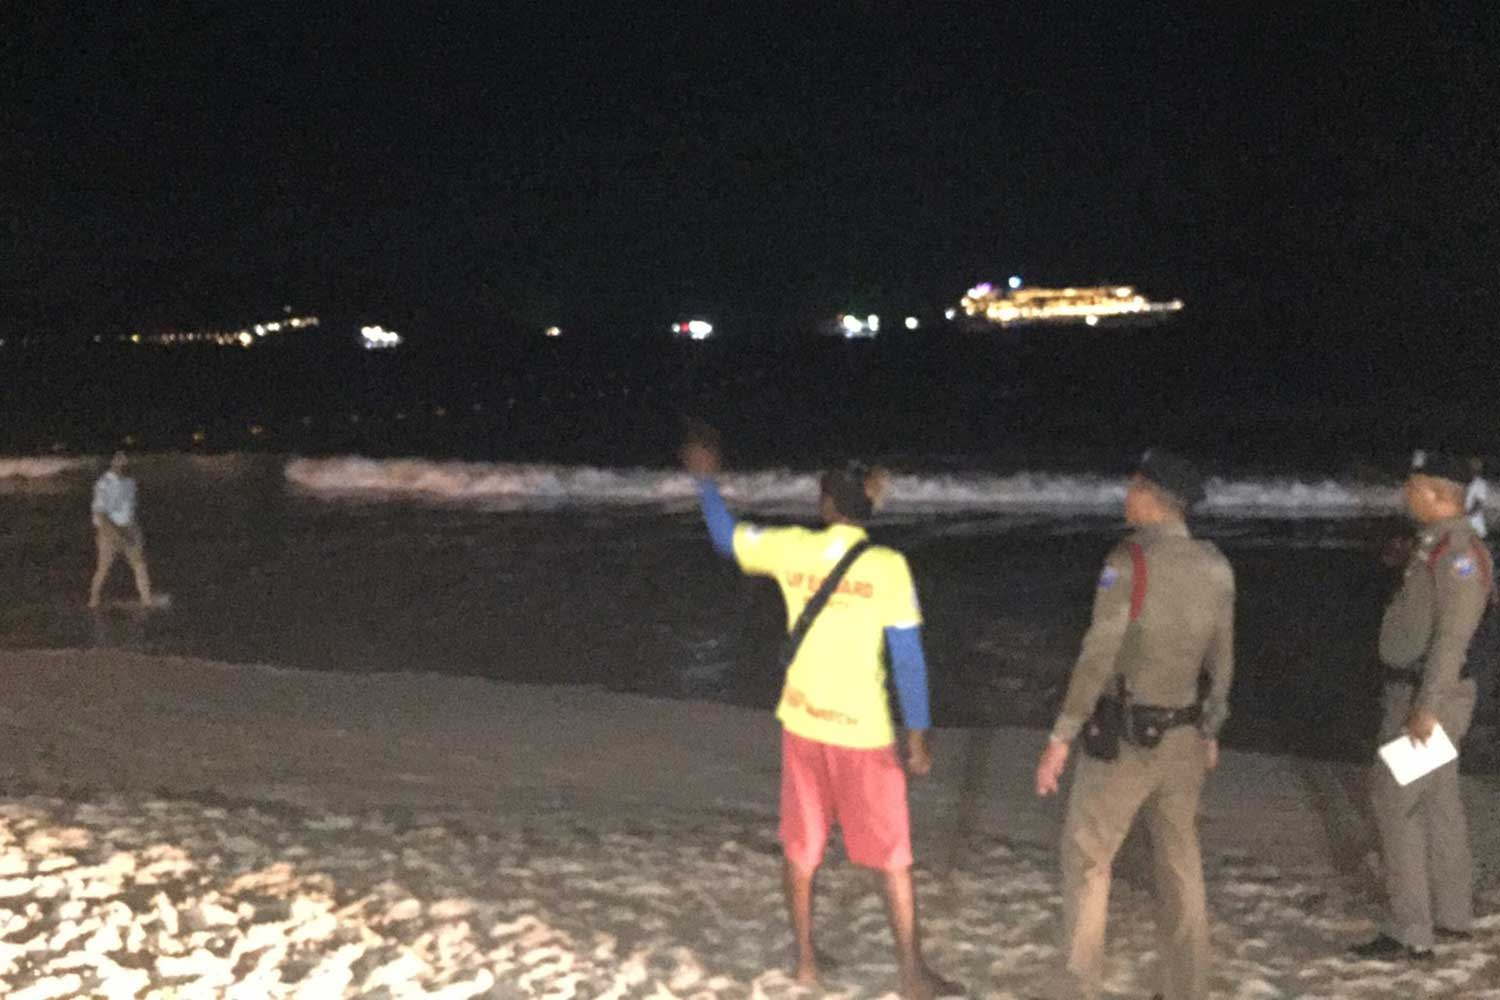 Police inspect the area where the foreign woman was found drowning and saved, on Patong beach in Phuket on Thursday morning. (Photo by Achadtaya Chuenniran)